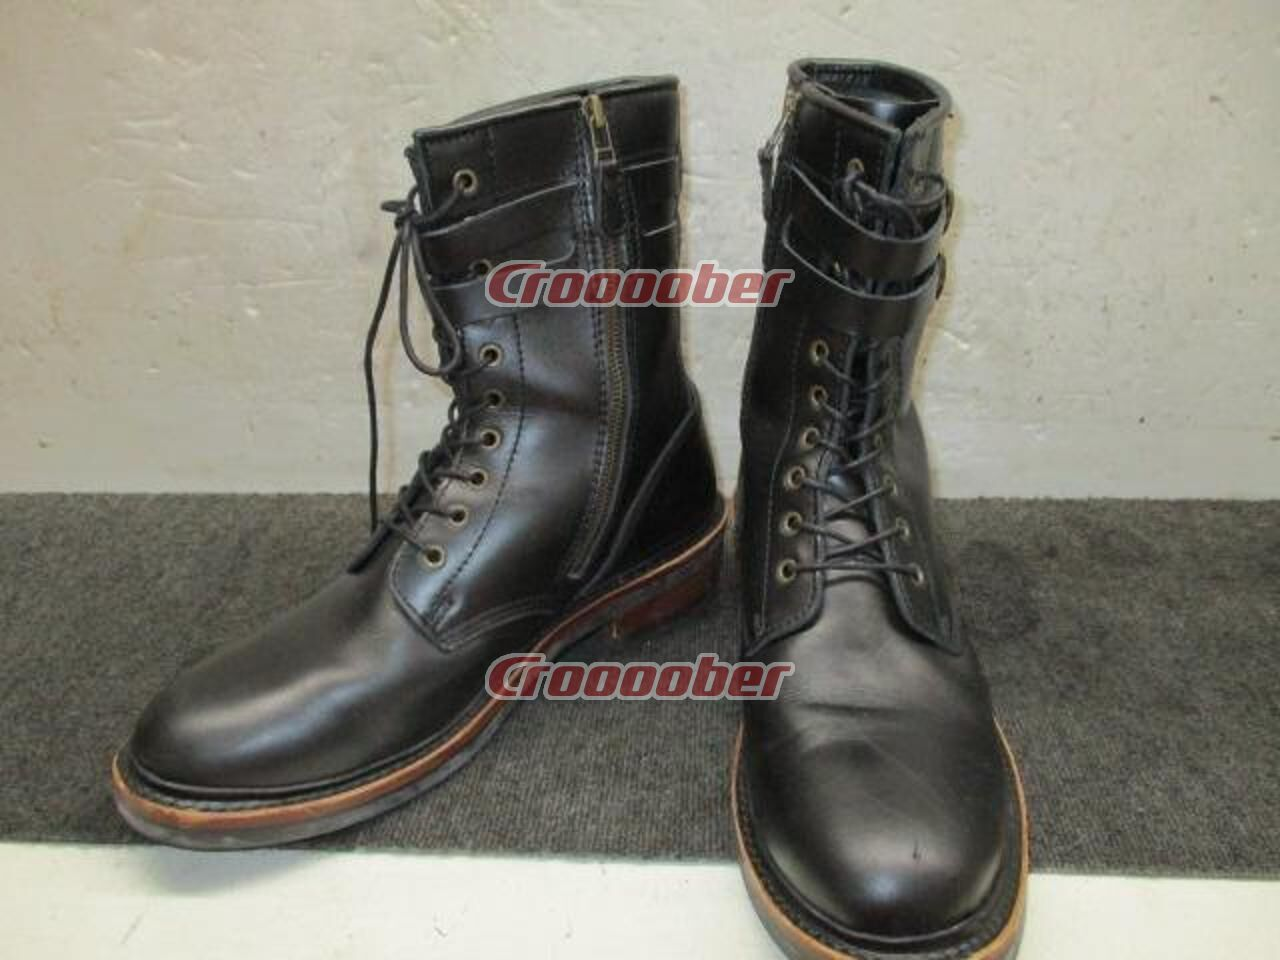 bf09faa959b48 Cedar Crest Leather Boots Size /28.0cm | Boots & Shoes Accessories |  Croooober